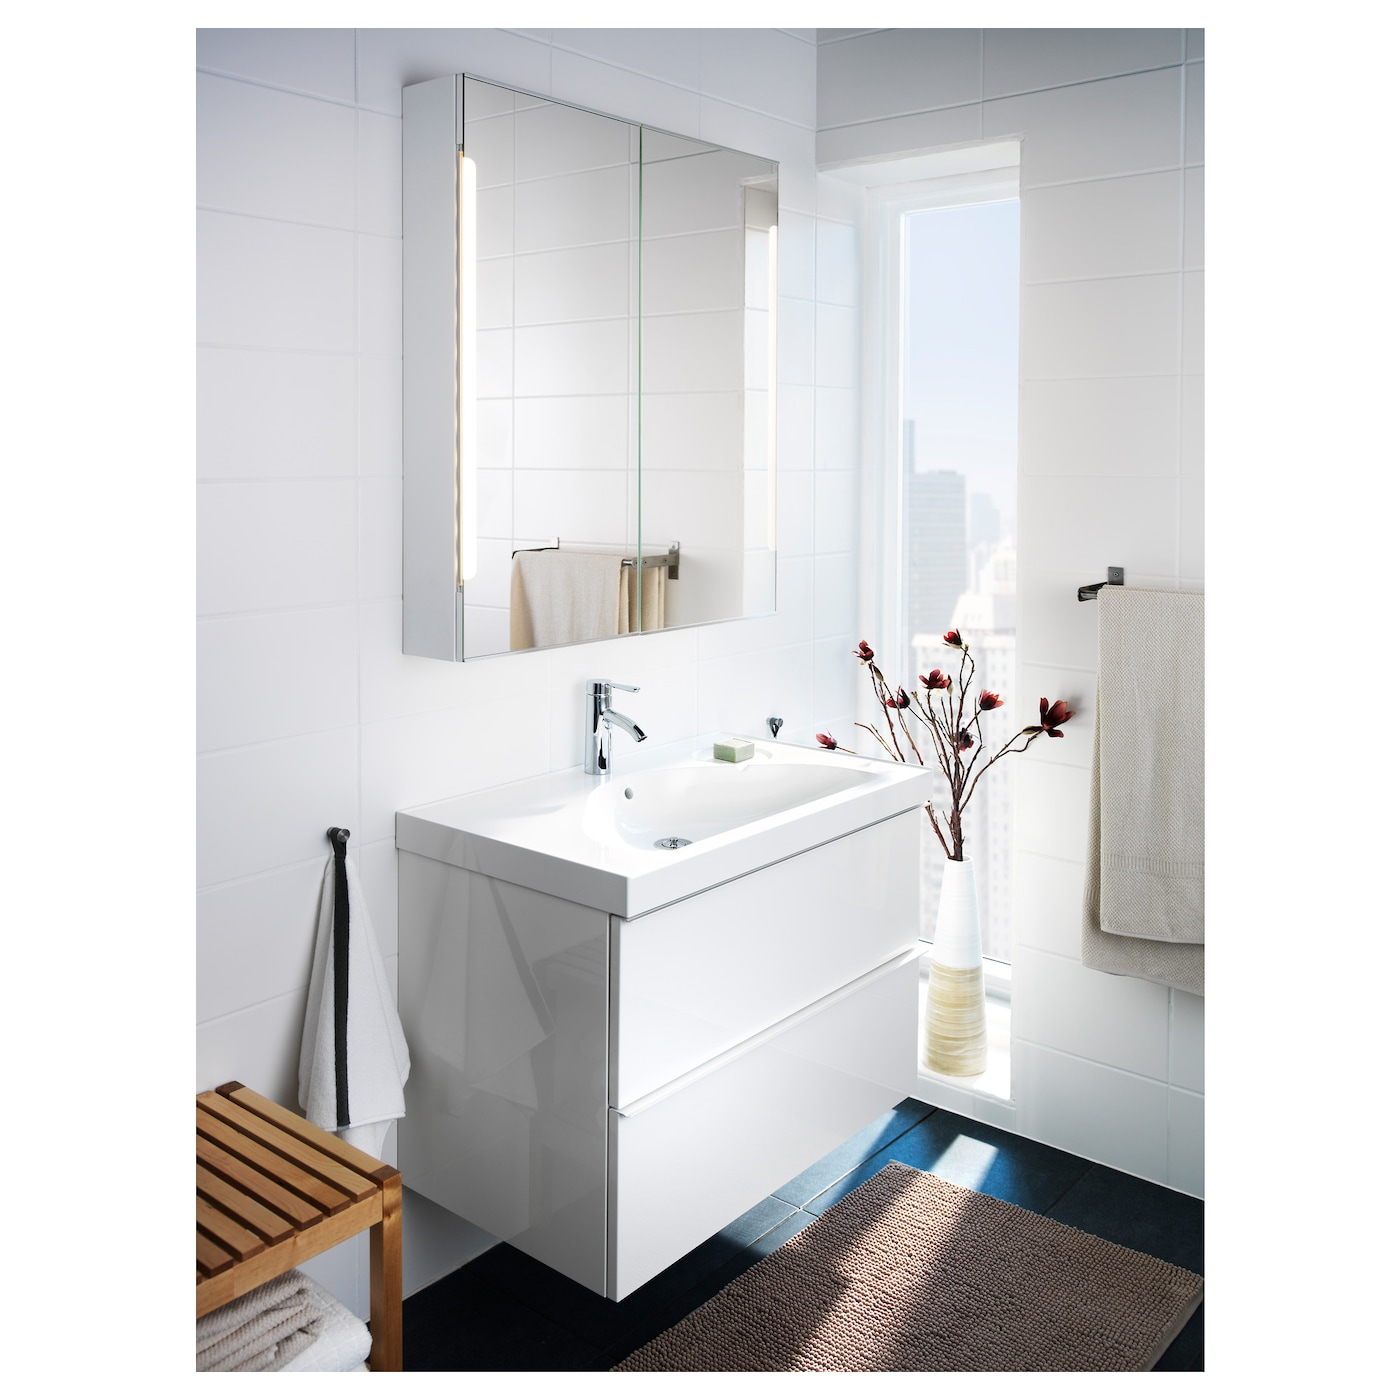 Storjorm mirror cab 2 door built in lighting white for Ikea bagno mobili